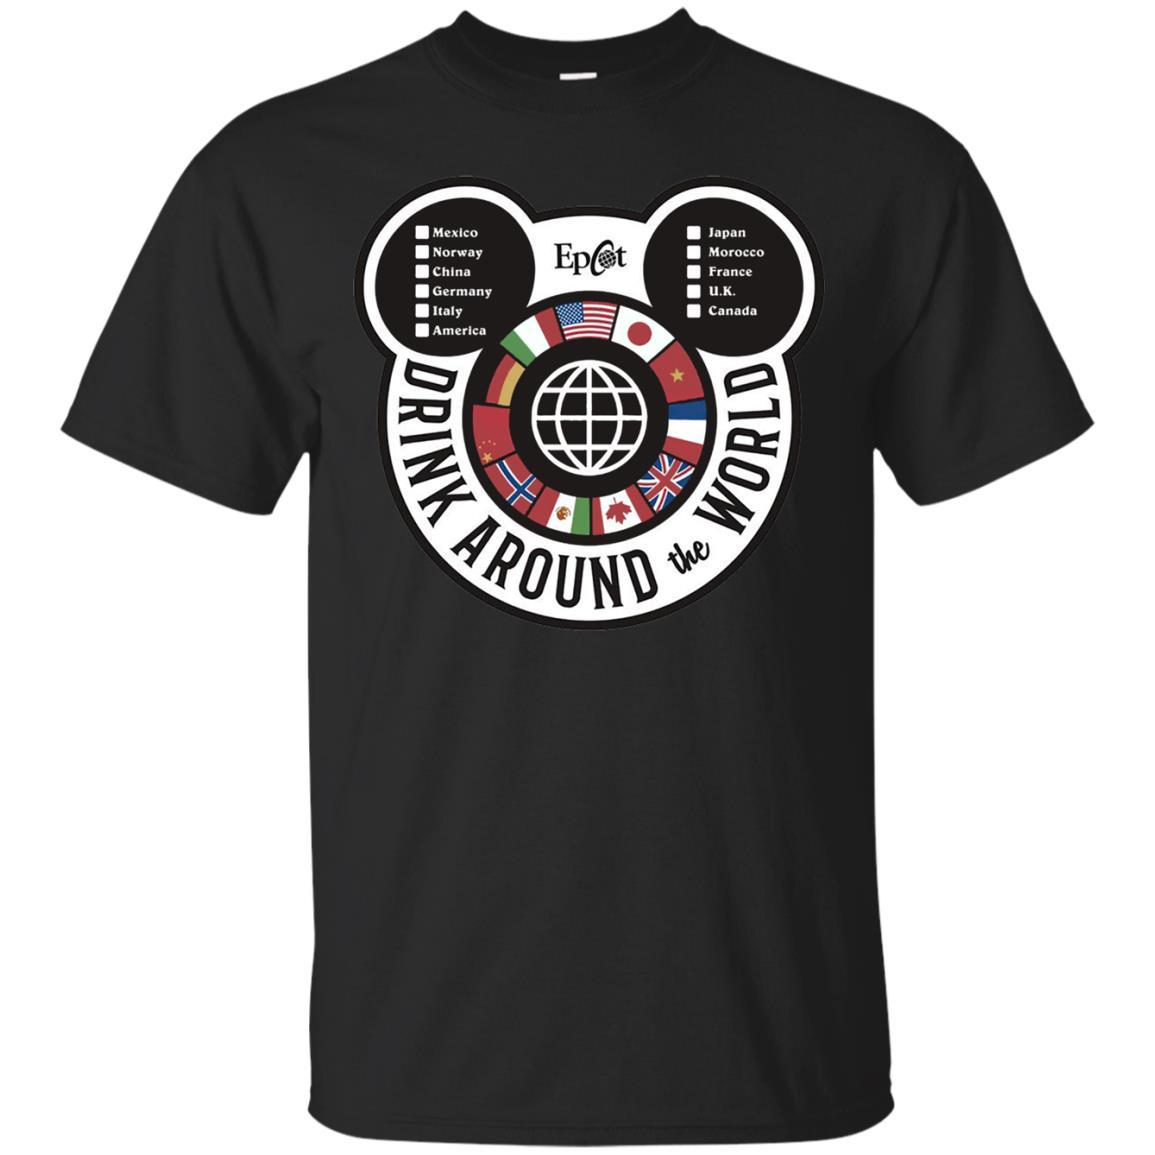 Drink Around the World - EPCOT Checklist - T-Shirt Black / 5XL